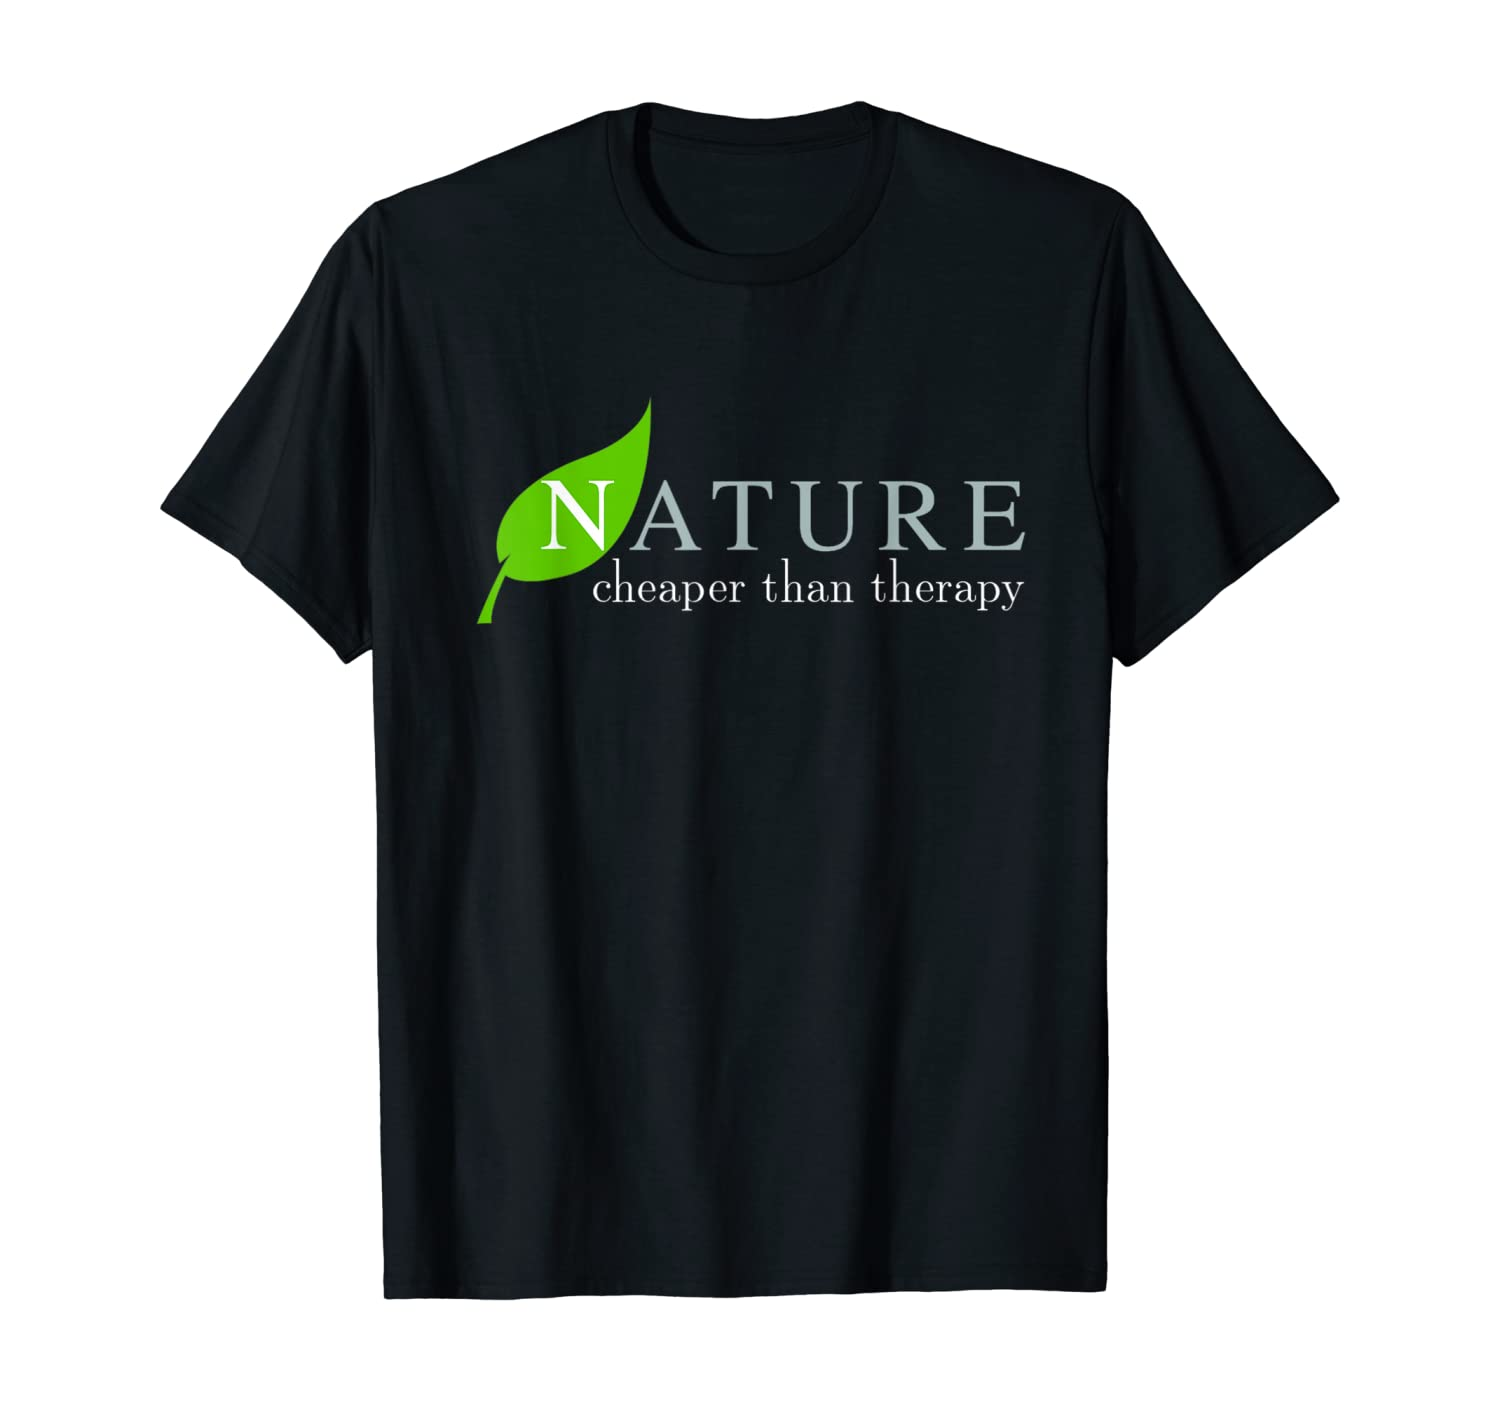 Nature T Shirt - Nature Cheaper Than Therapy